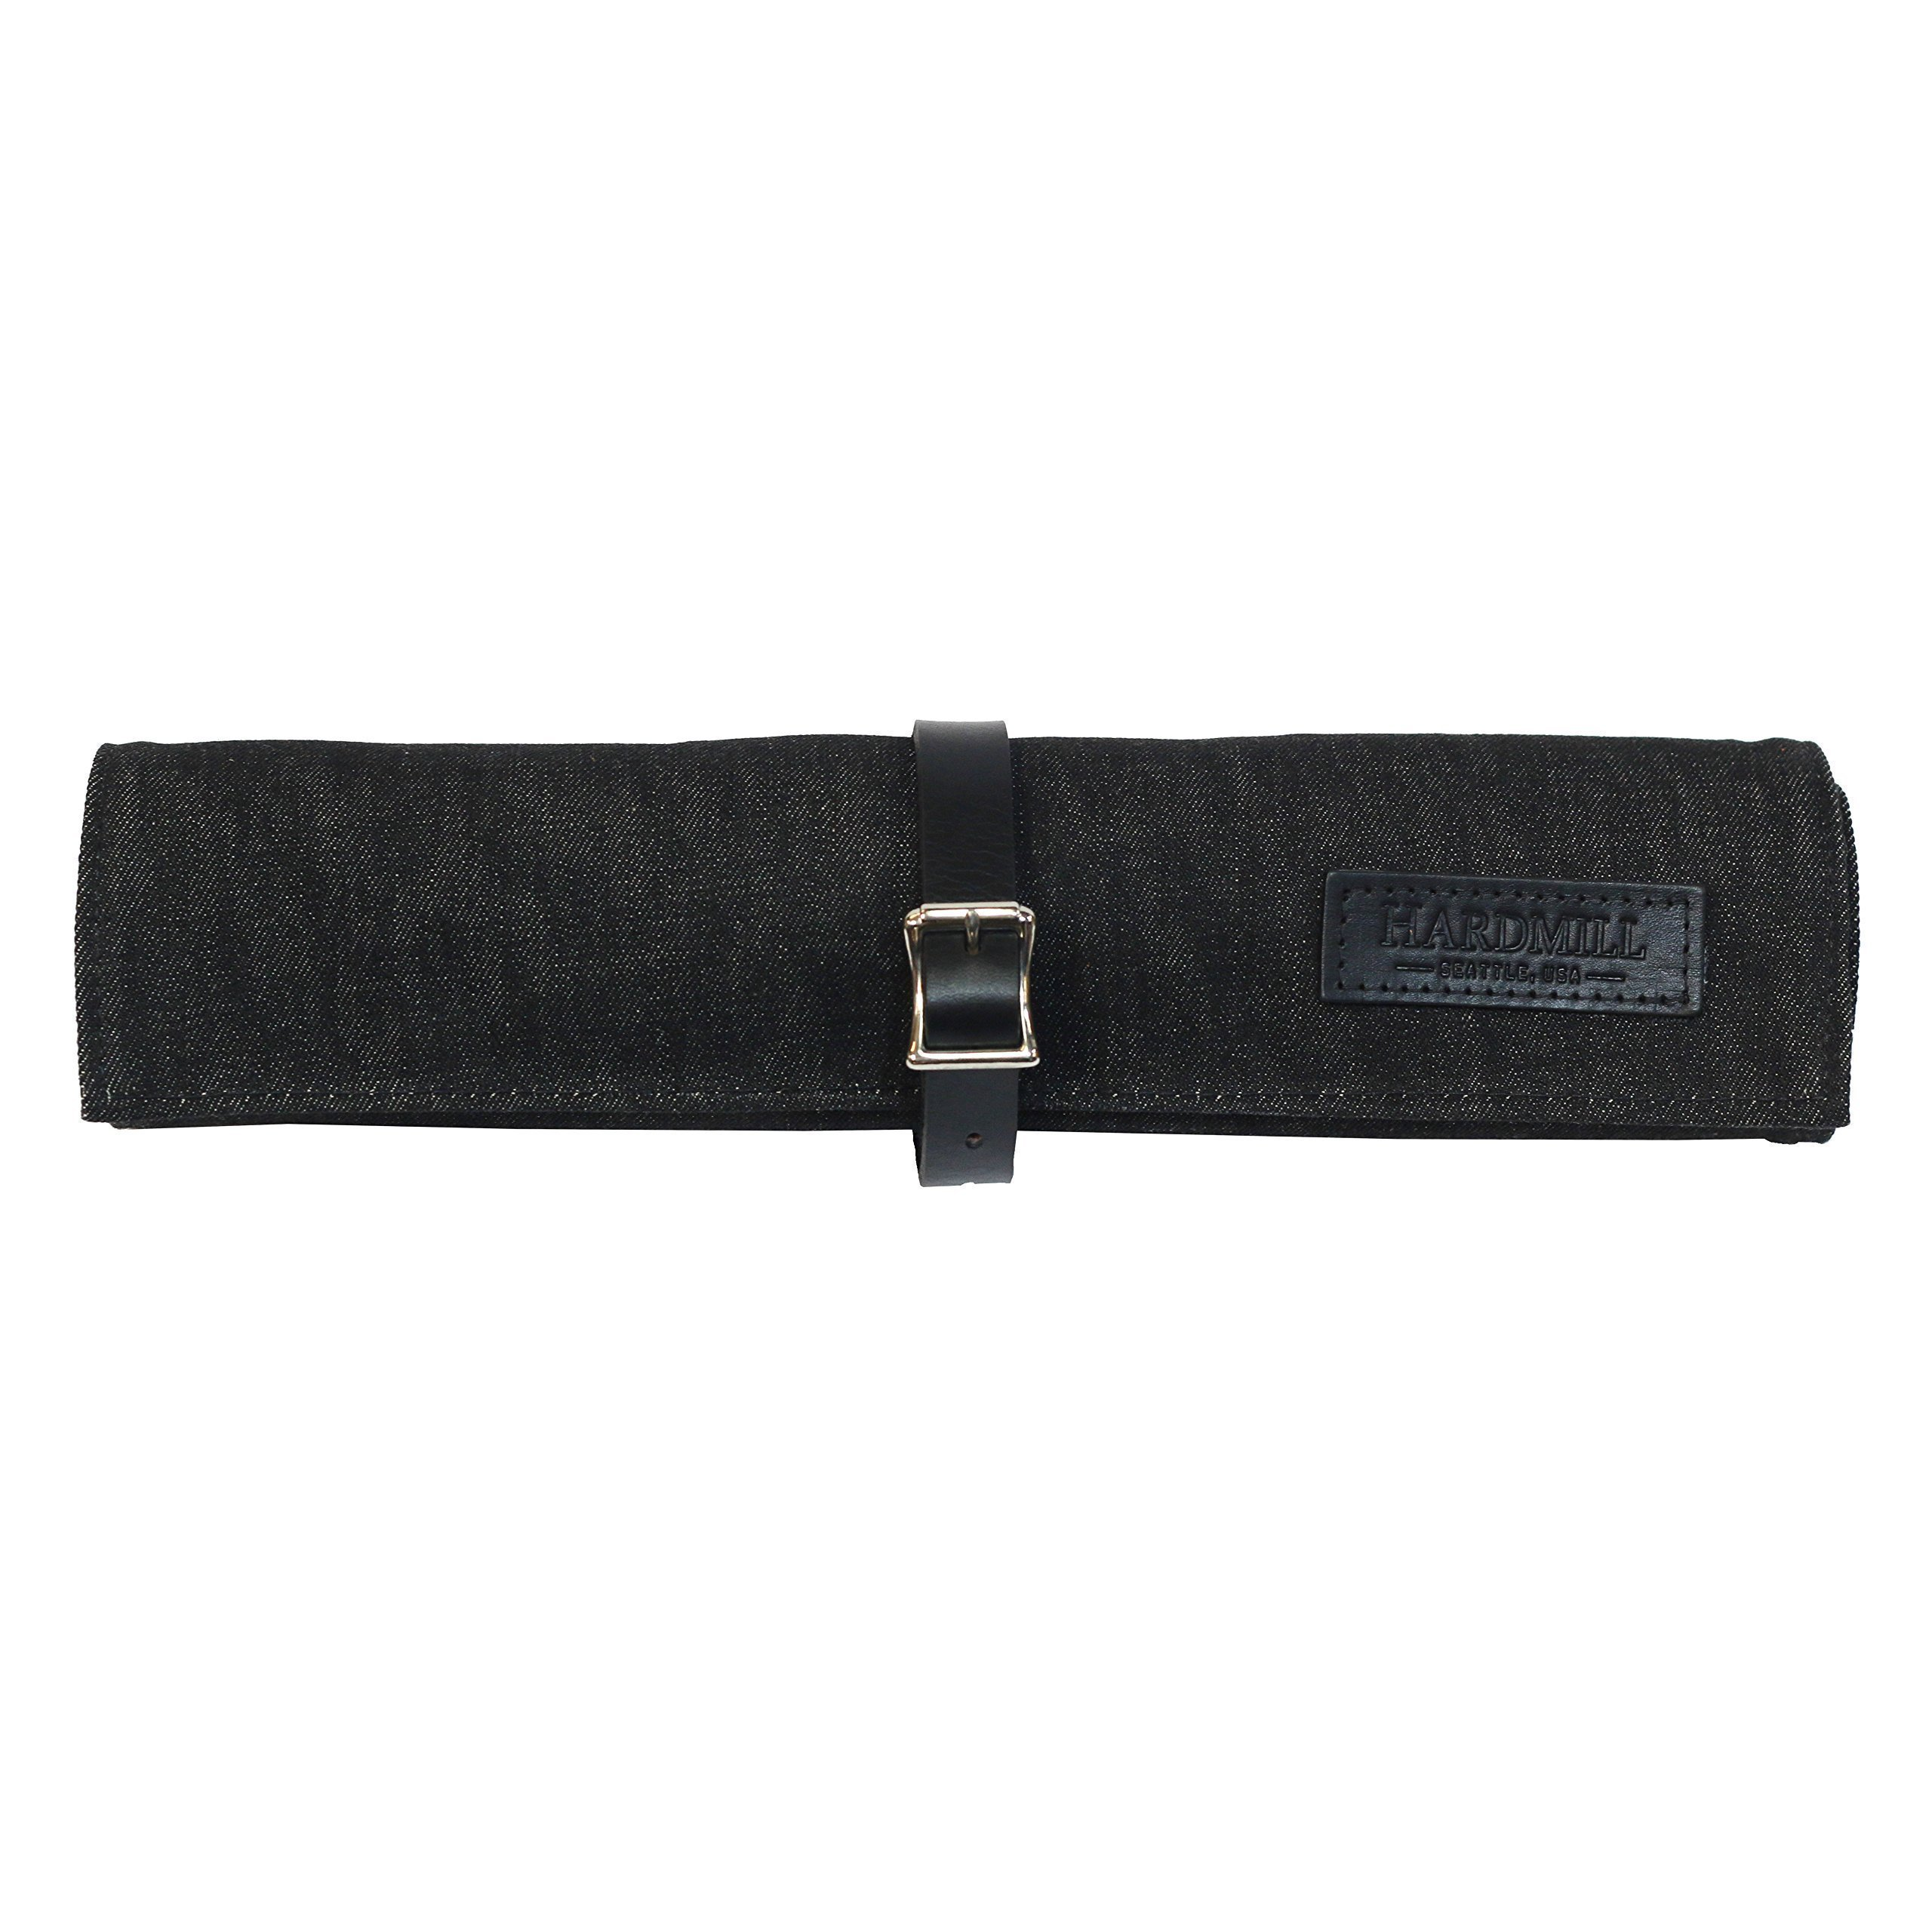 Tool Roll - Waxed Denim - Black - Made in USA by Hardmill